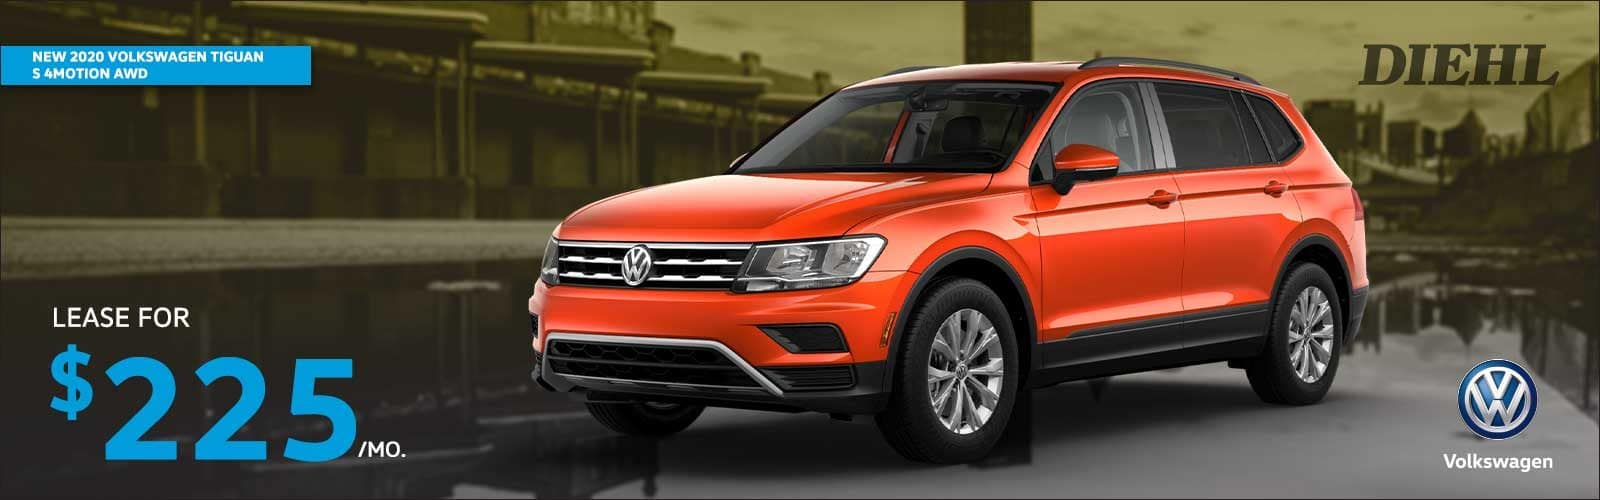 NEW 2020 VOLKSWAGEN TIGUAN S 4MOTION AWD